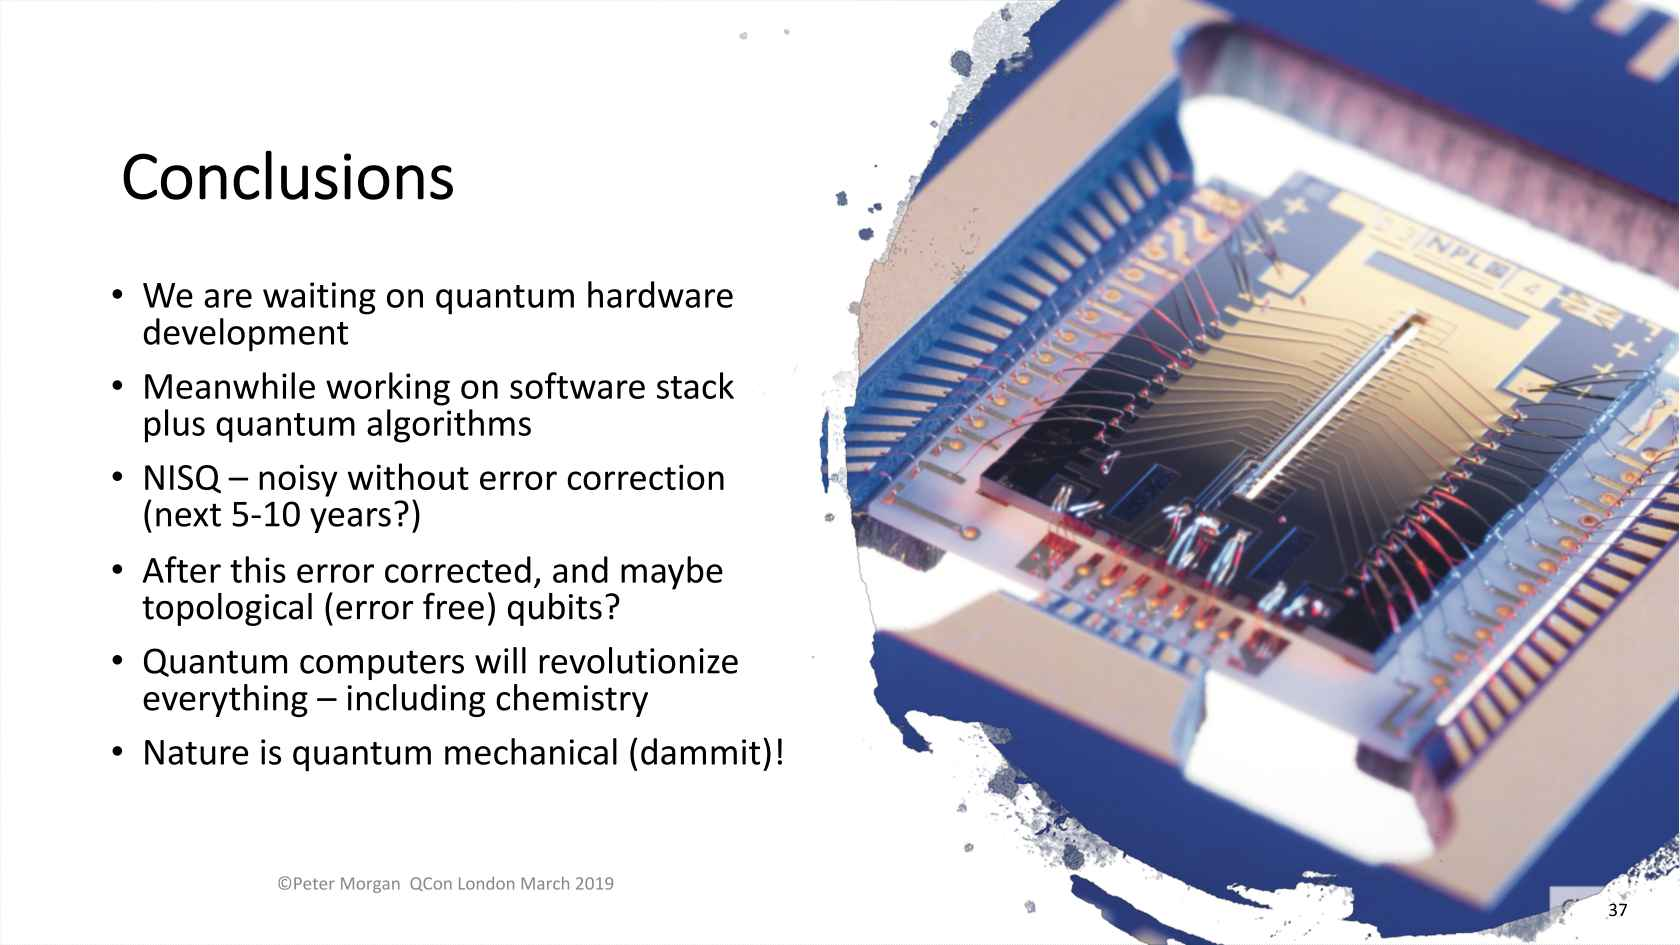 Using Quantum Computers to Simulate Chemistry